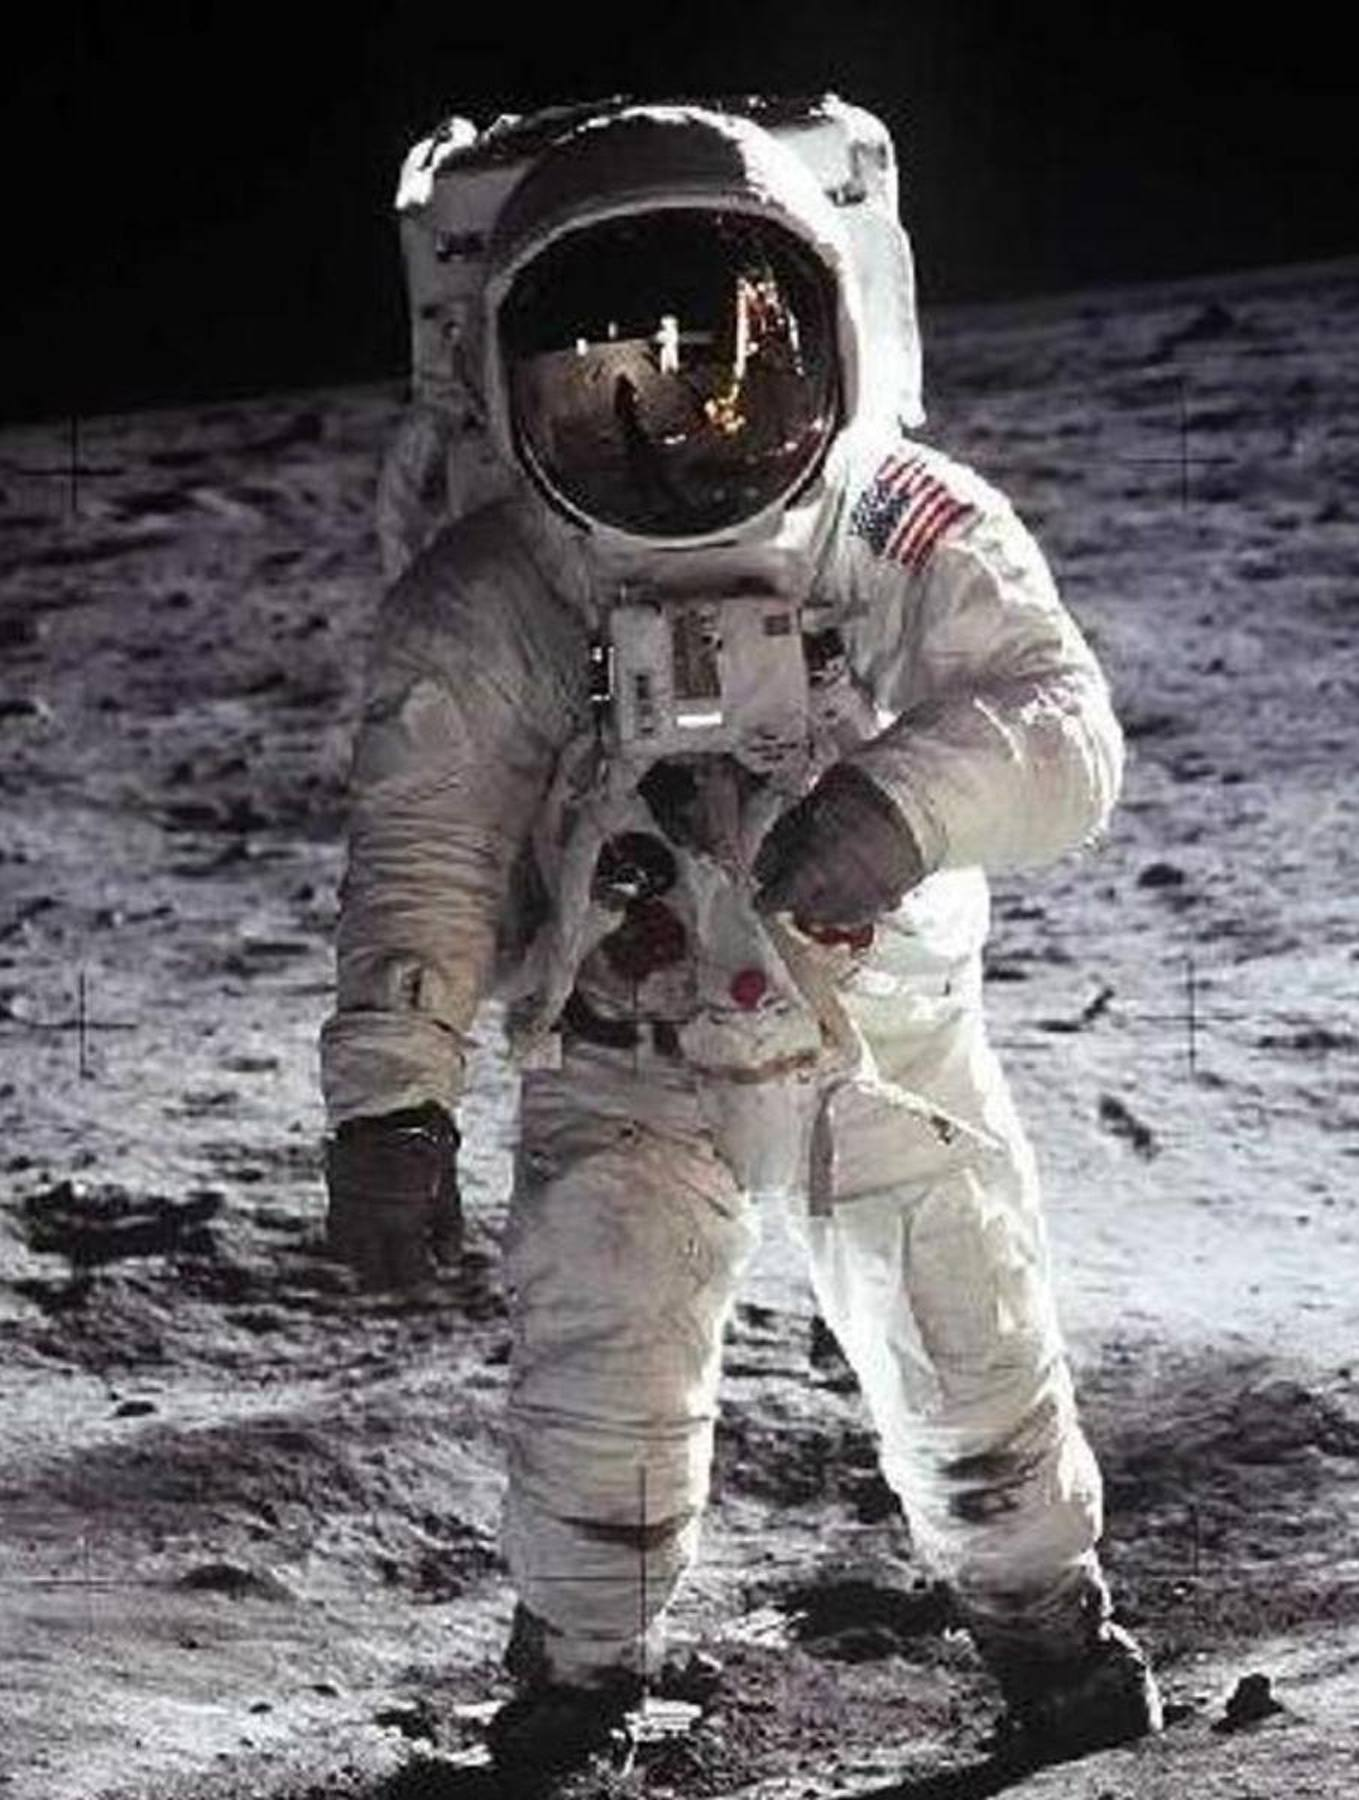 Man on the Moon: 50th Anniversary of the Lunar Landing, July 9 - August 25